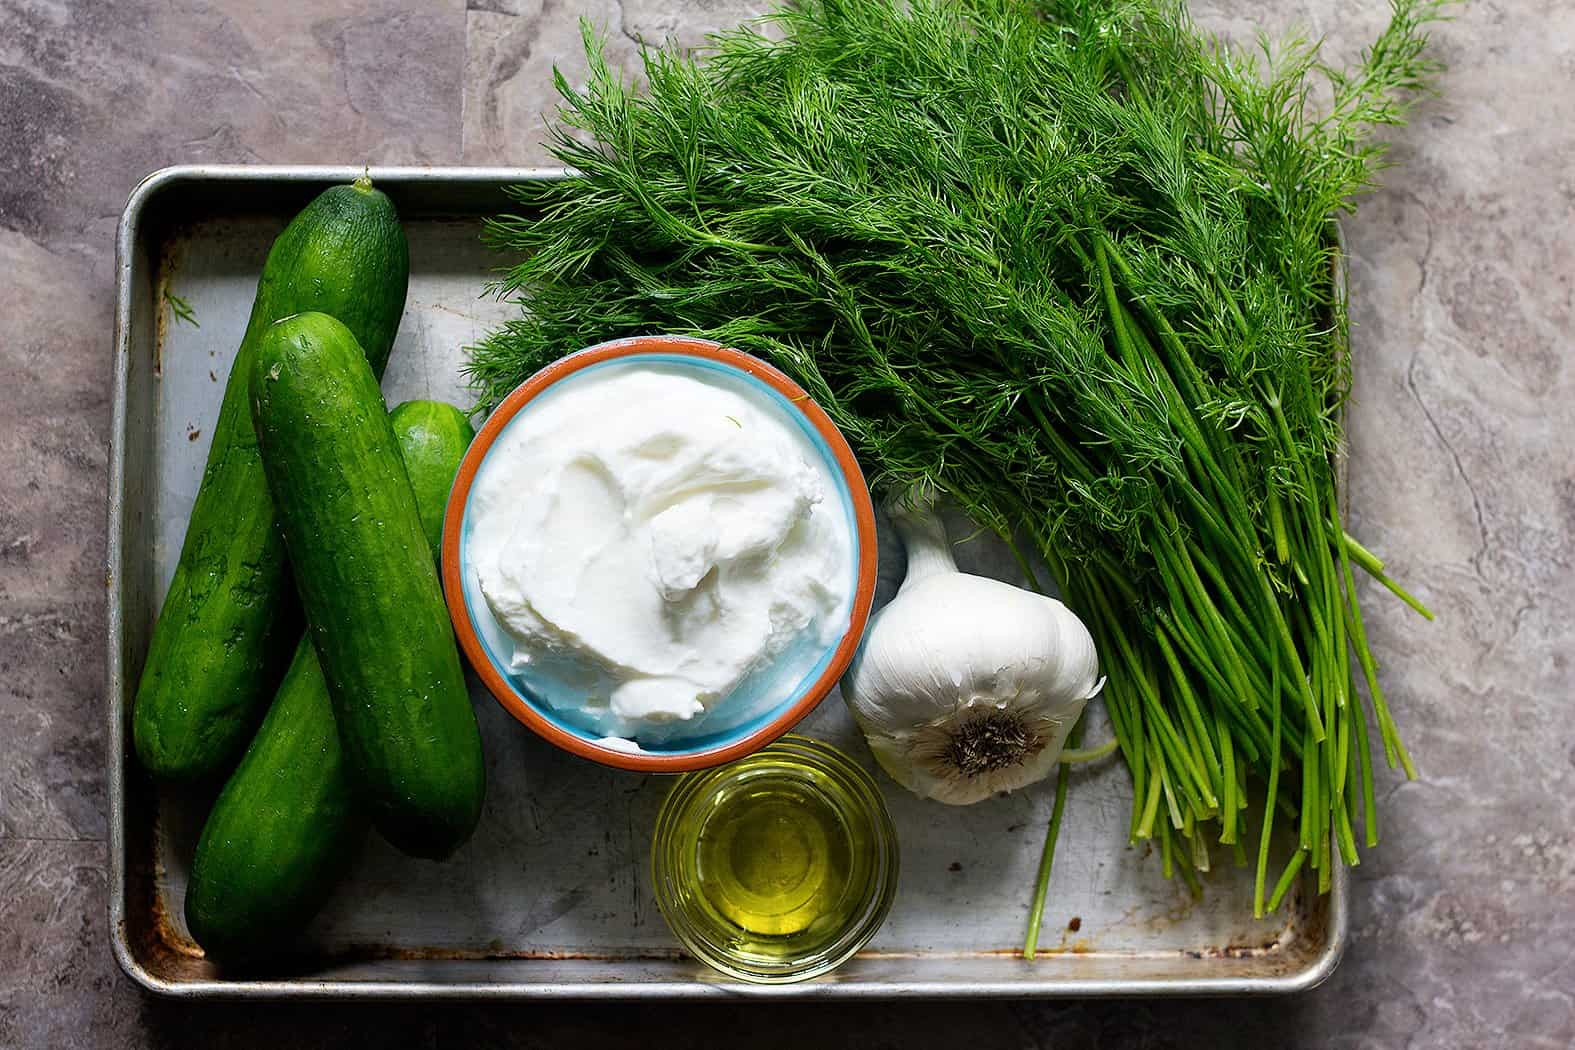 For easy tzatziki sauce you need cucumbers, yogurt, garlic, fresh dill and olive oil.